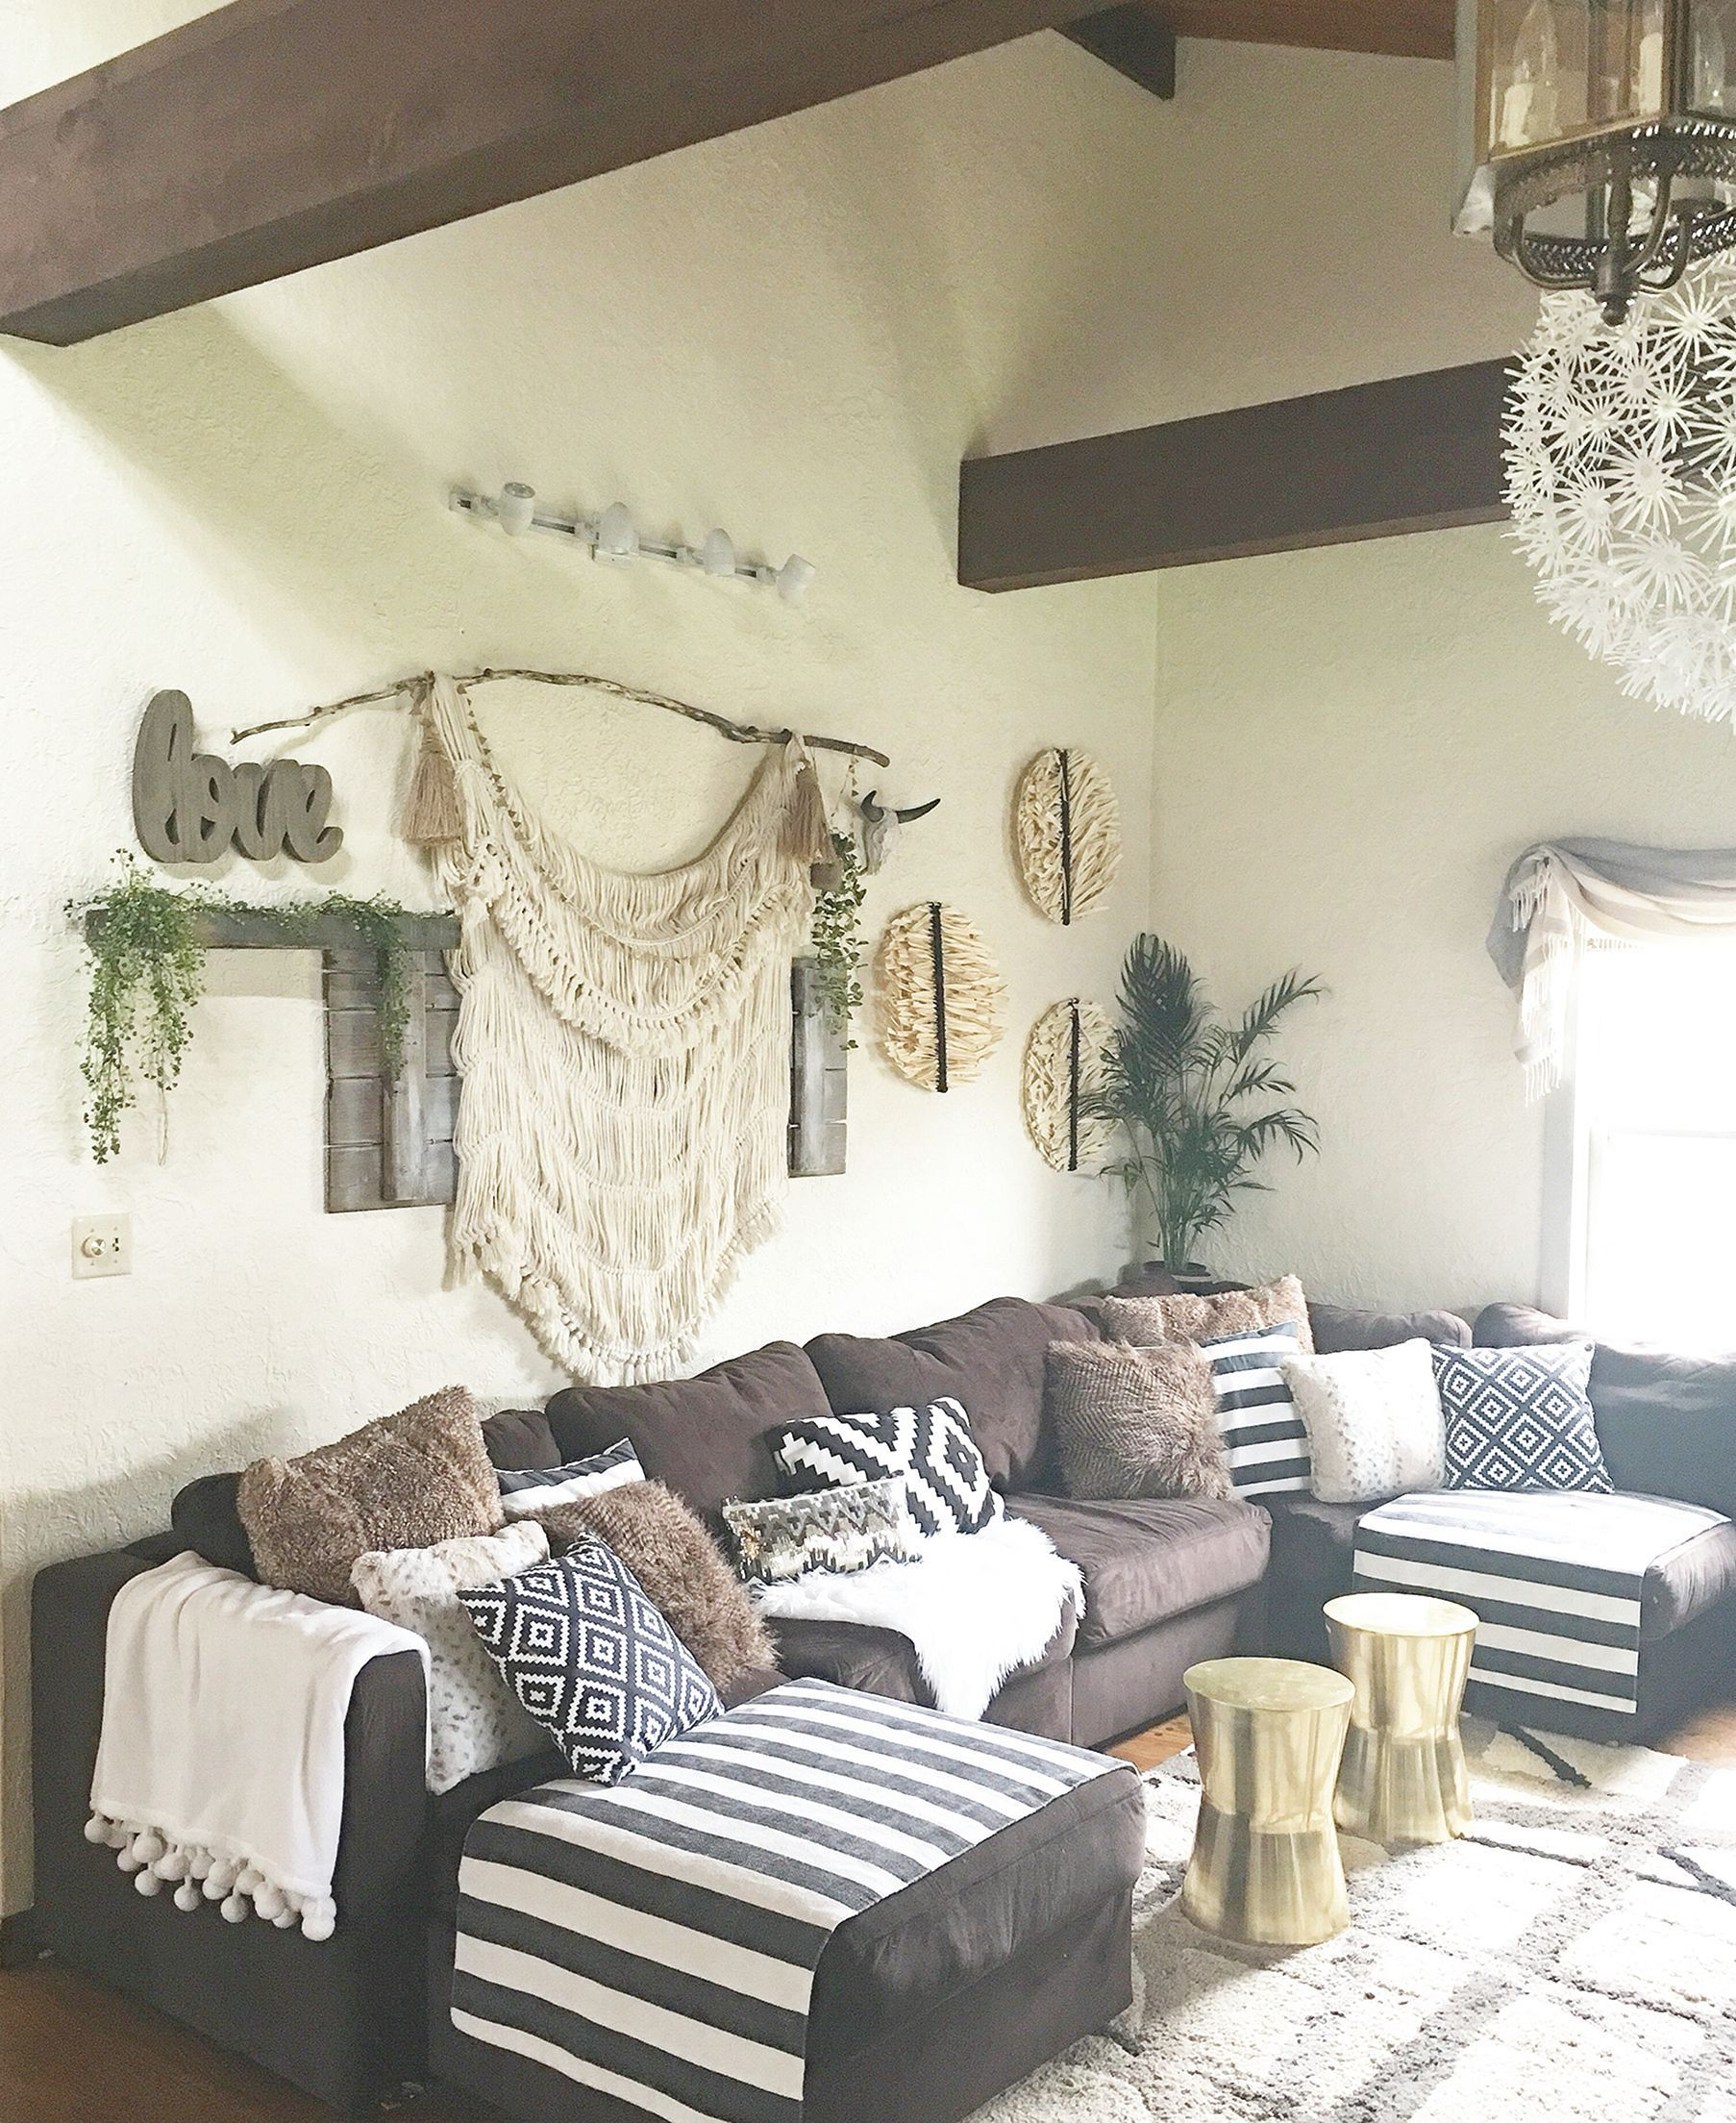 The Best And Stylist Boho Chic Home And Apartment Decor Ideas No 41 Rustic Glam Living Room Farm House Living Room Bohemian Living Room